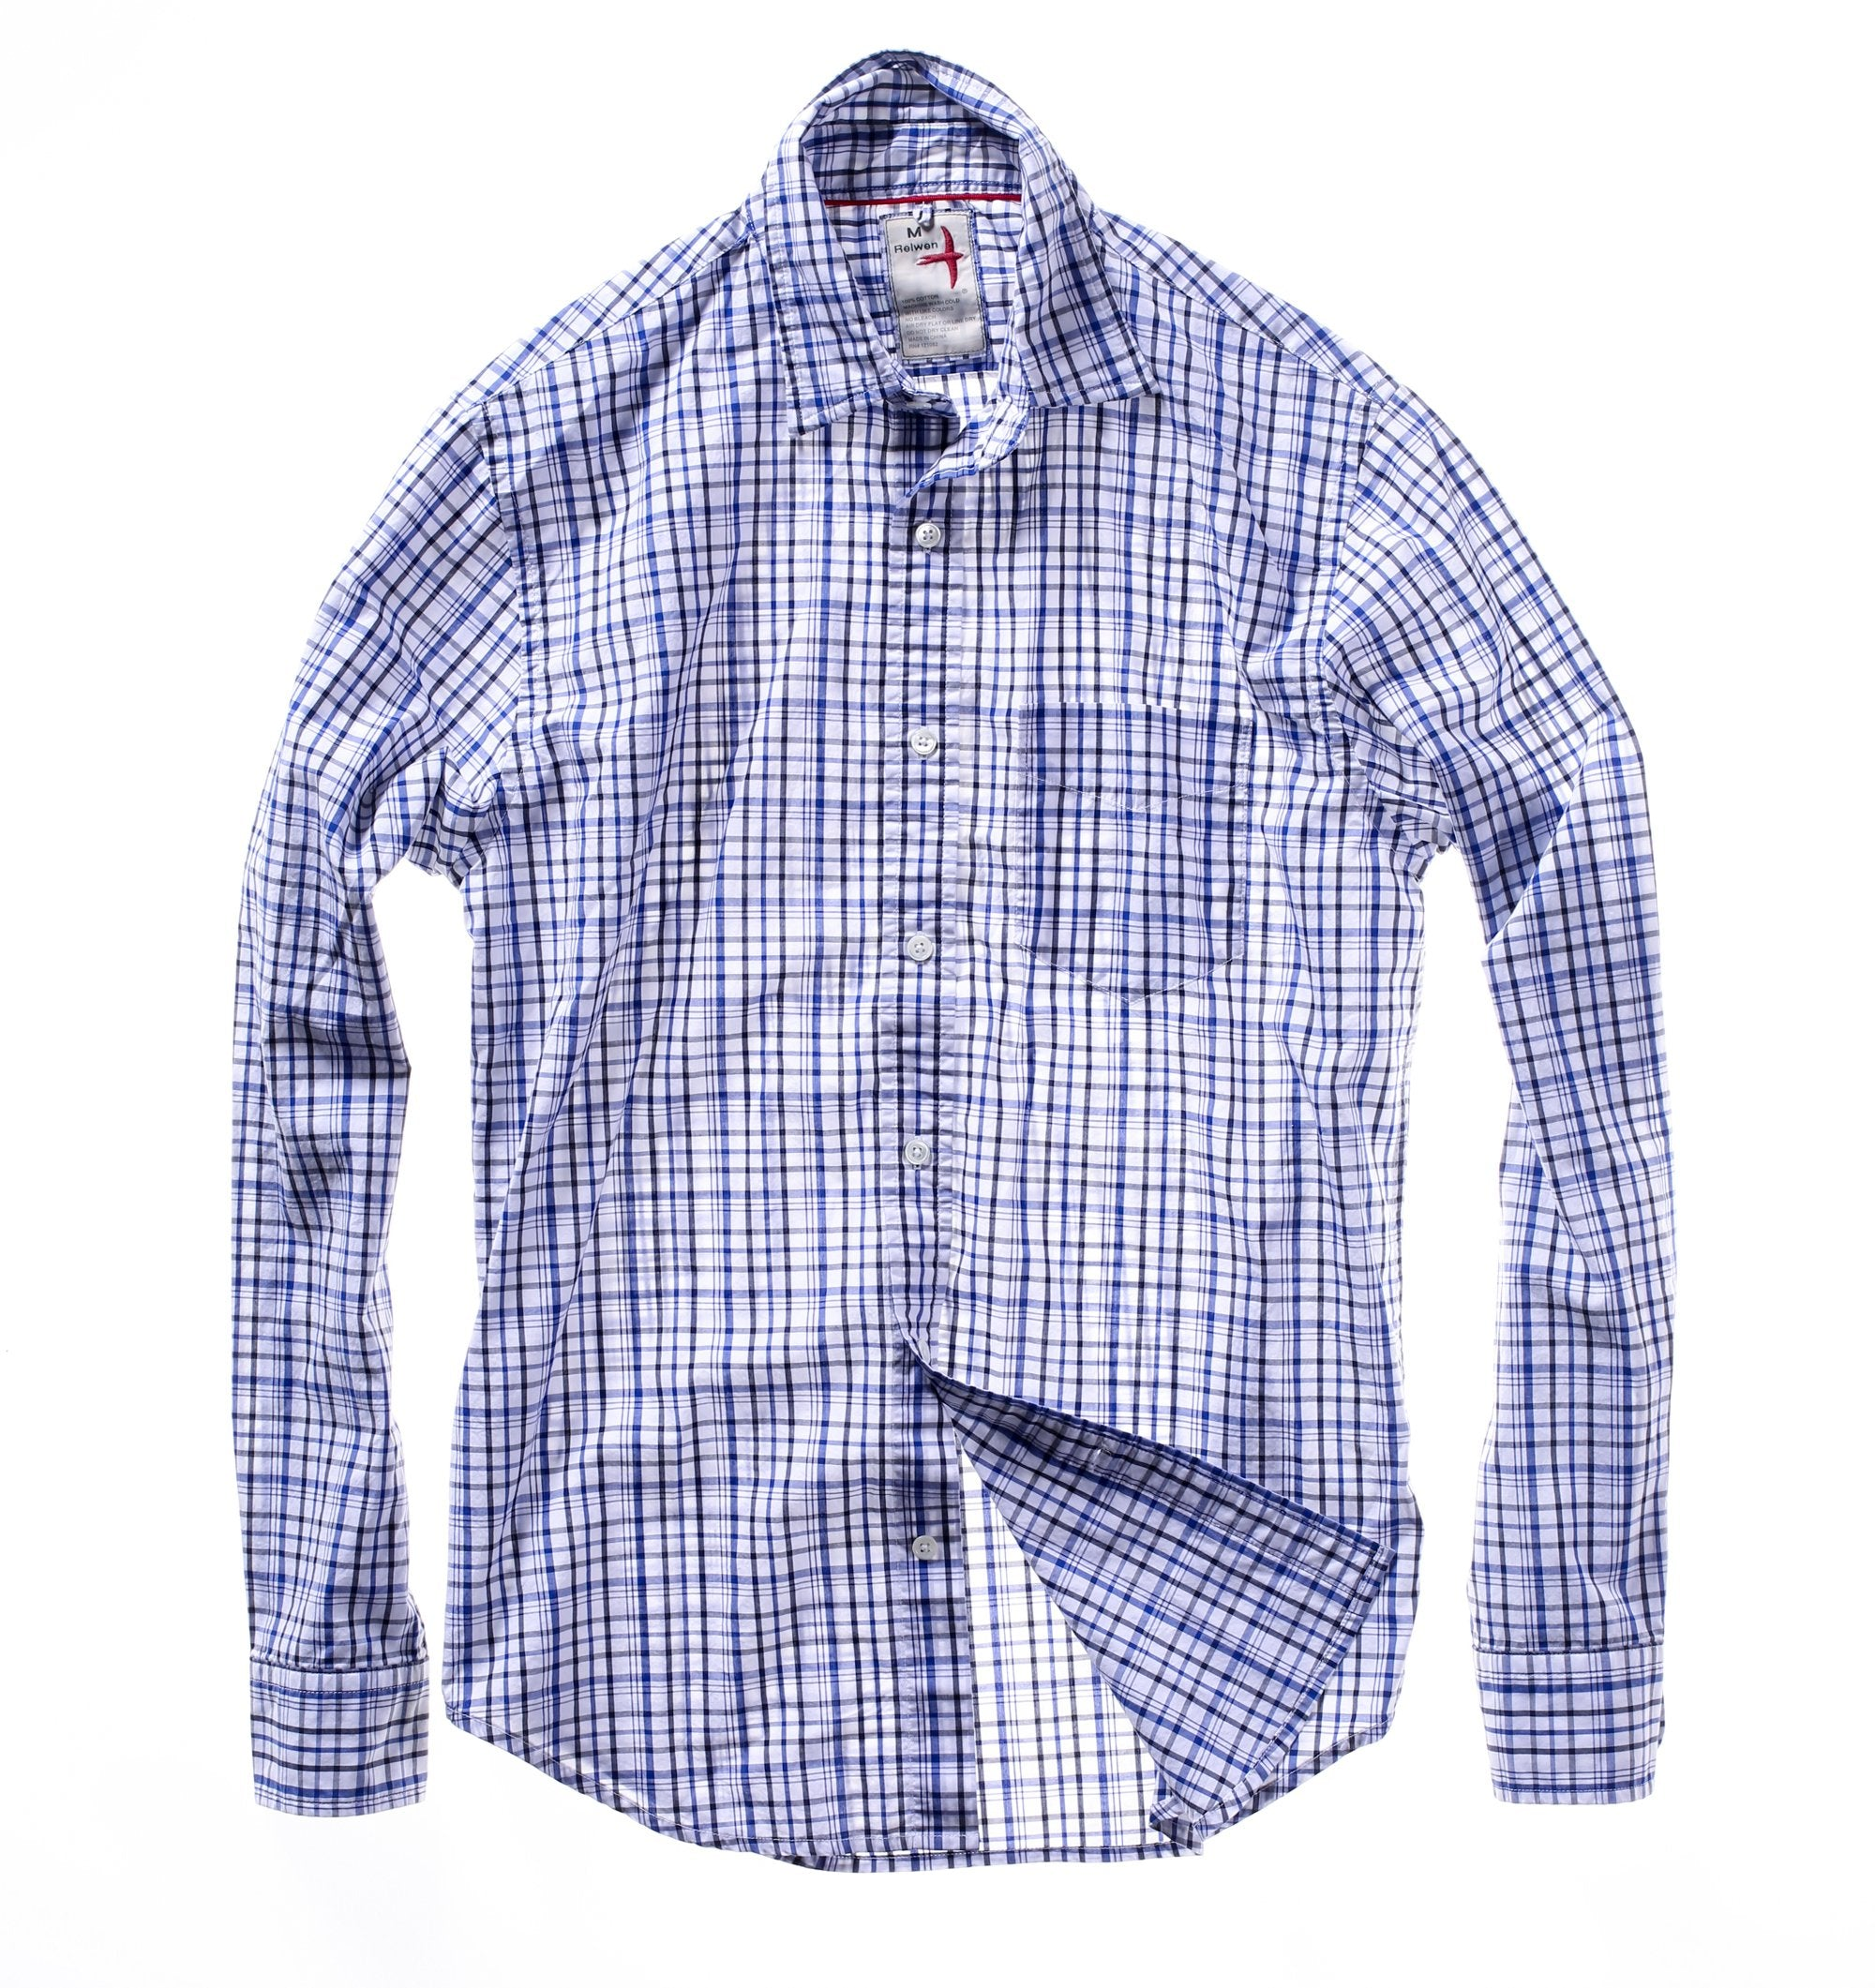 Relwen Classic Blues Shirt M300314122